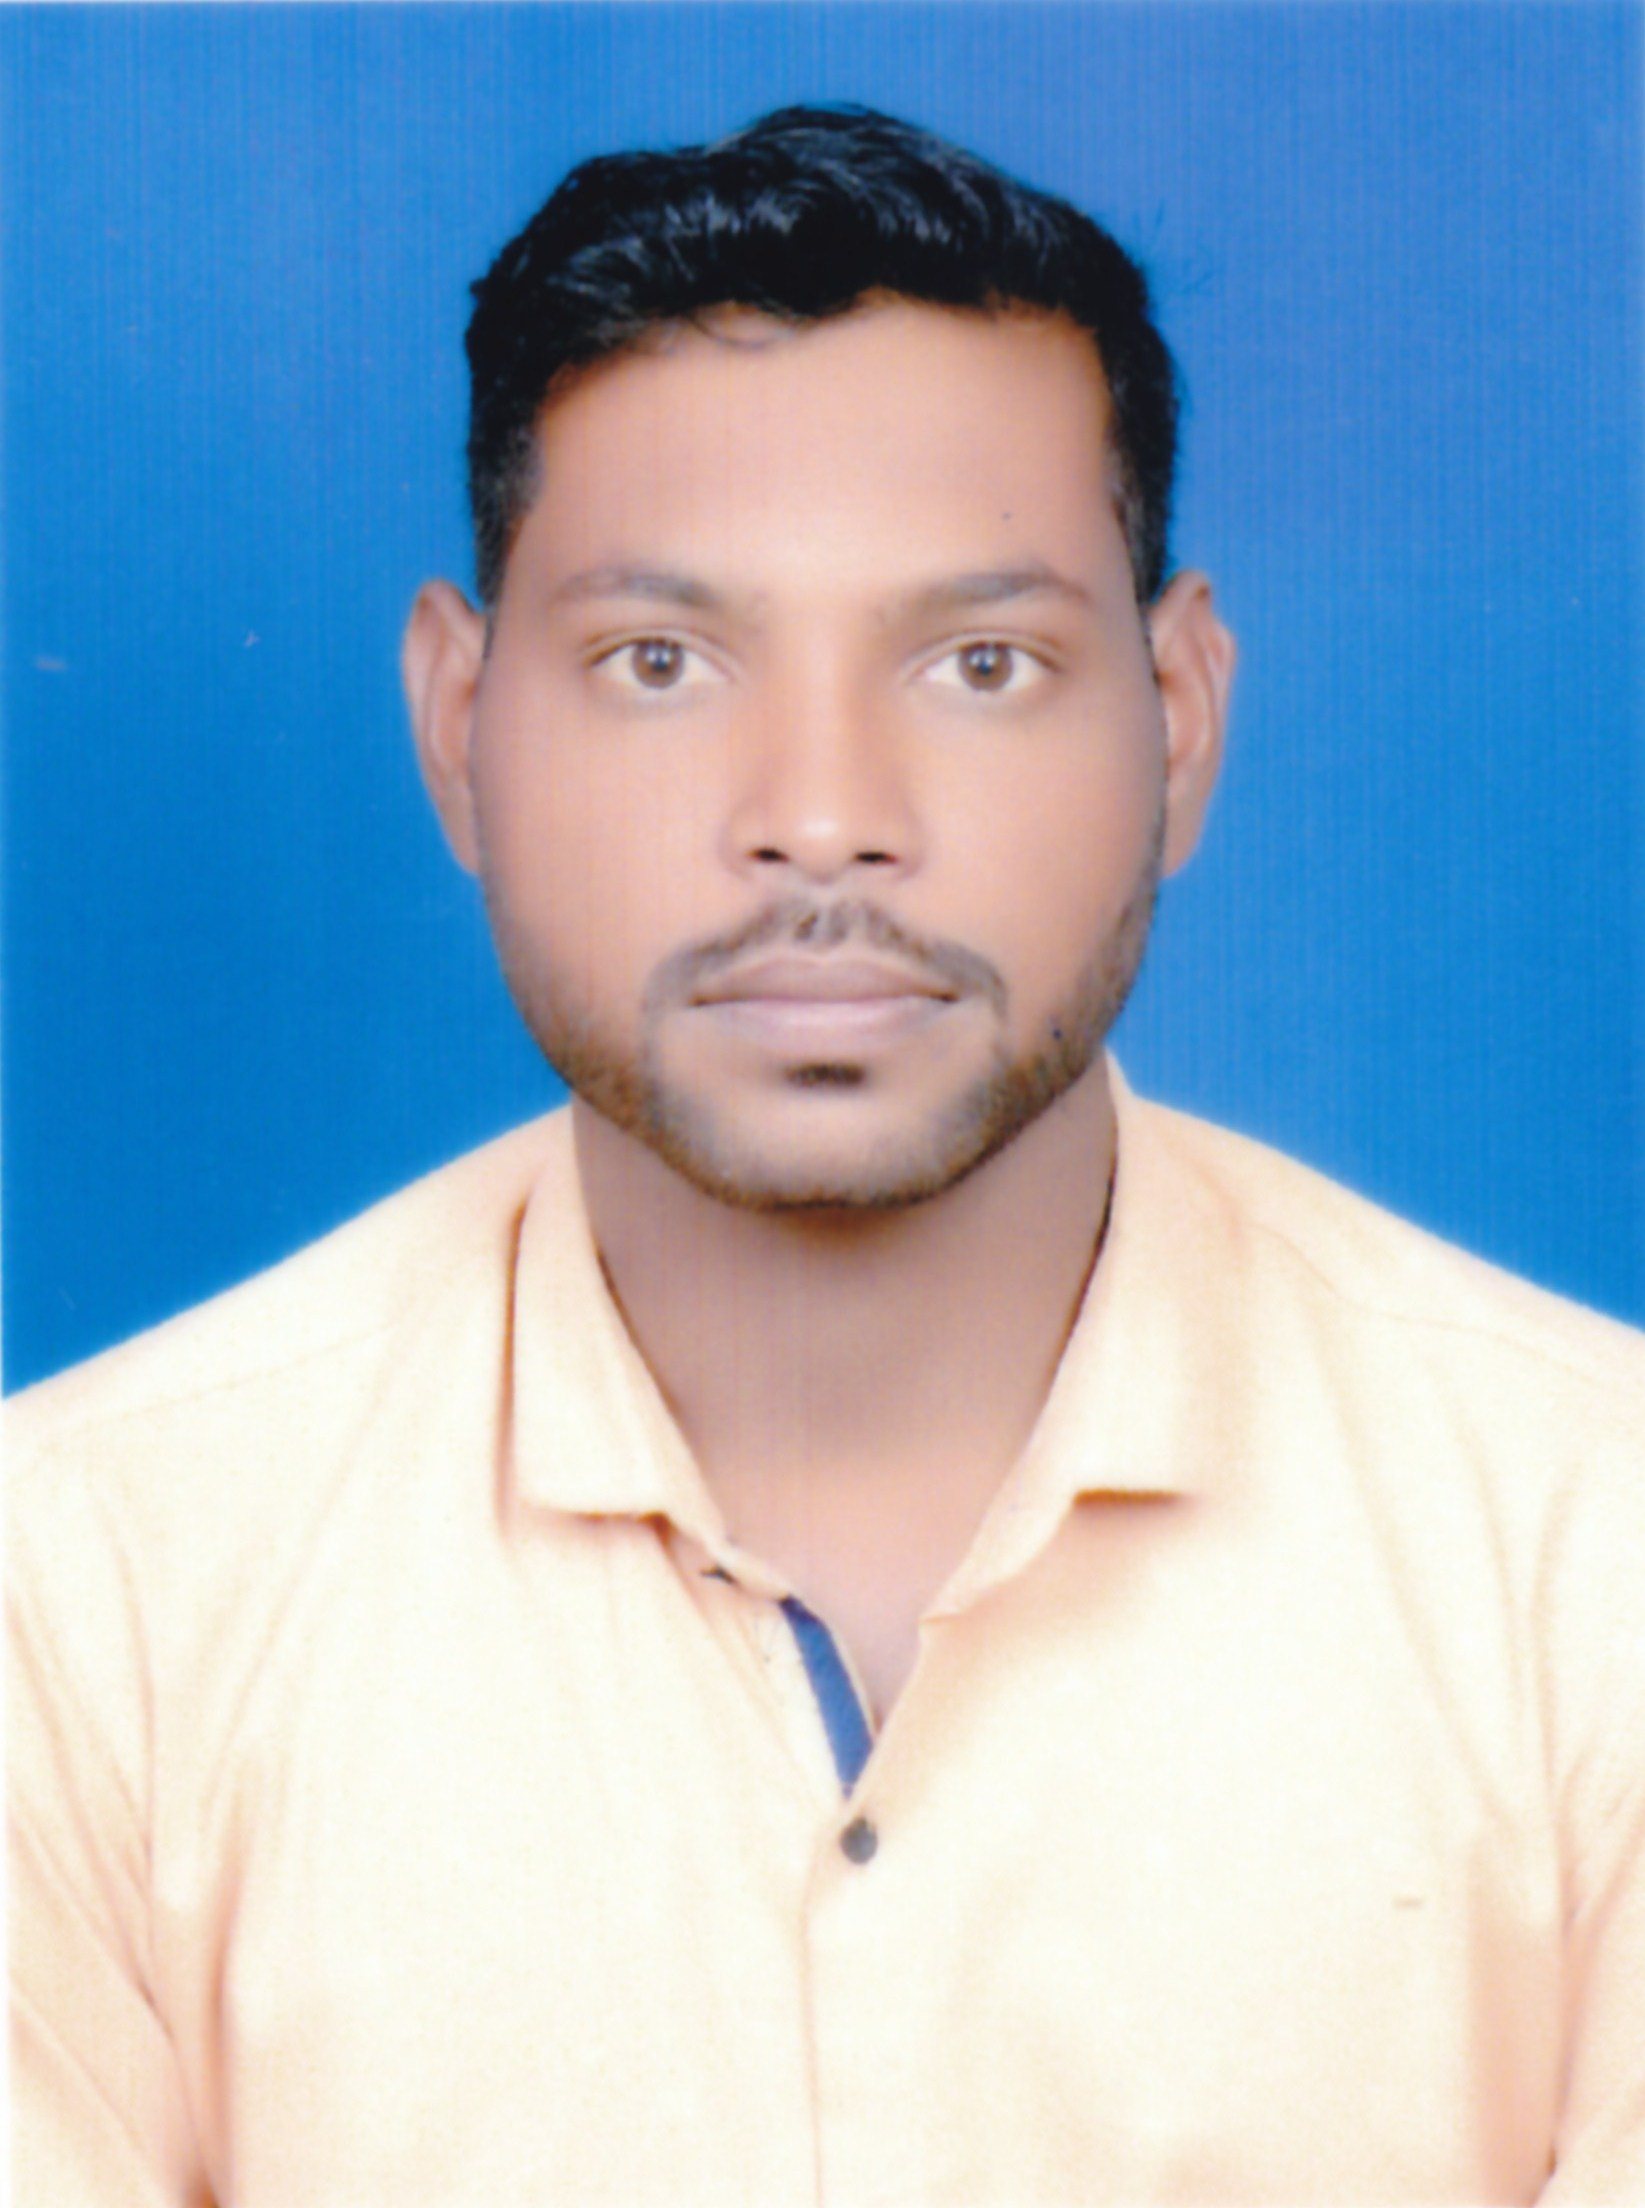 Mr. Harsh Kumar Yadav